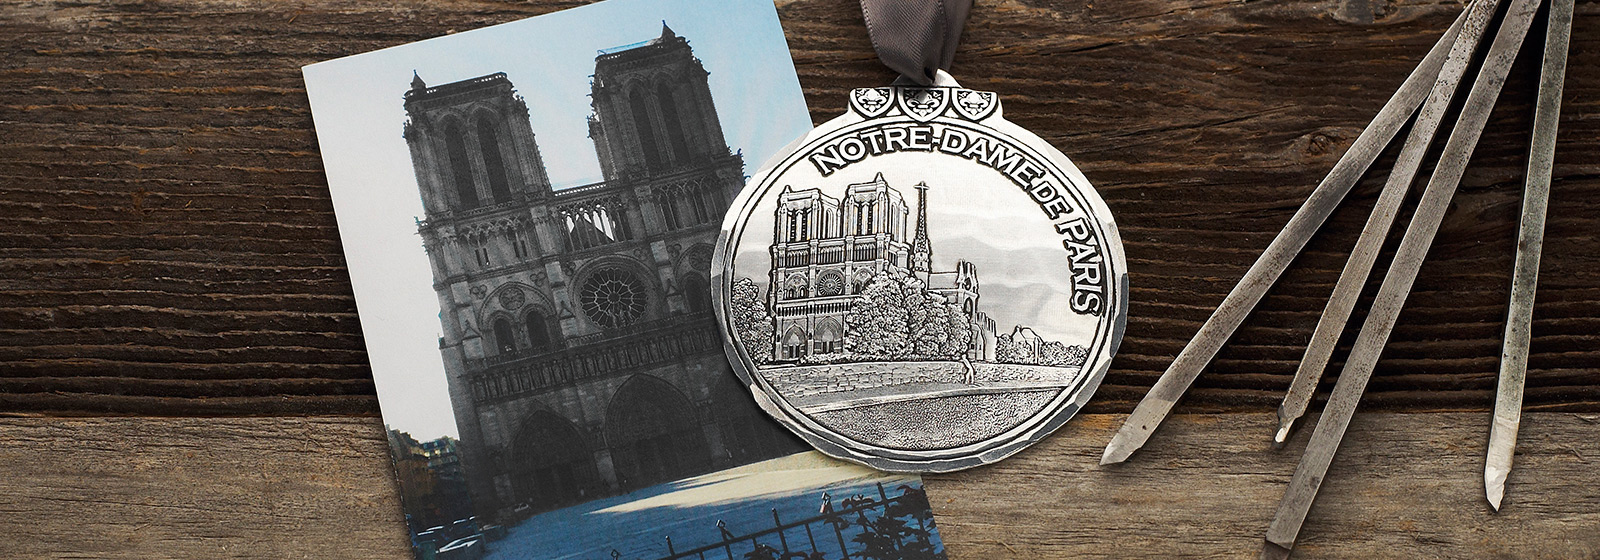 Notre Dame Cathedral Ornament